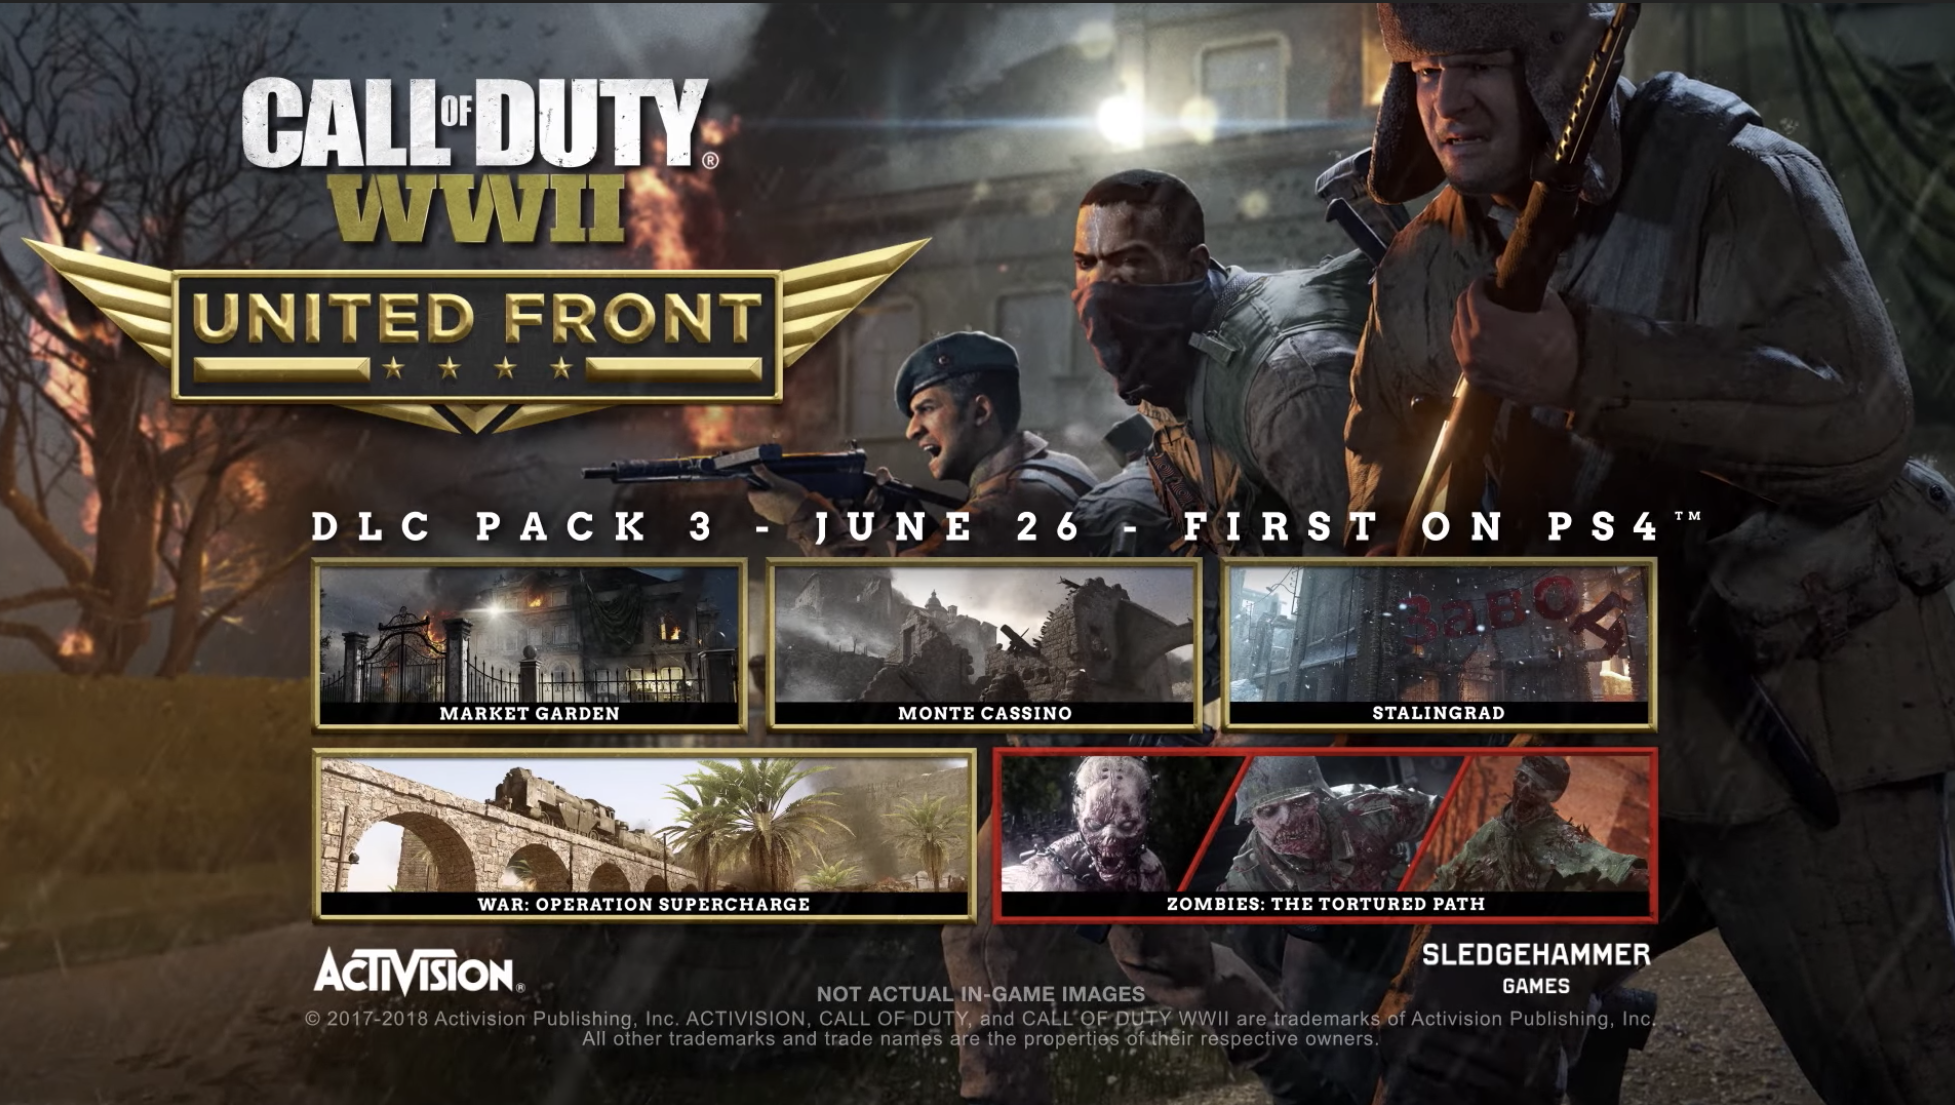 Call of Duty: WWII United Front DLC Pack 3 available June 26